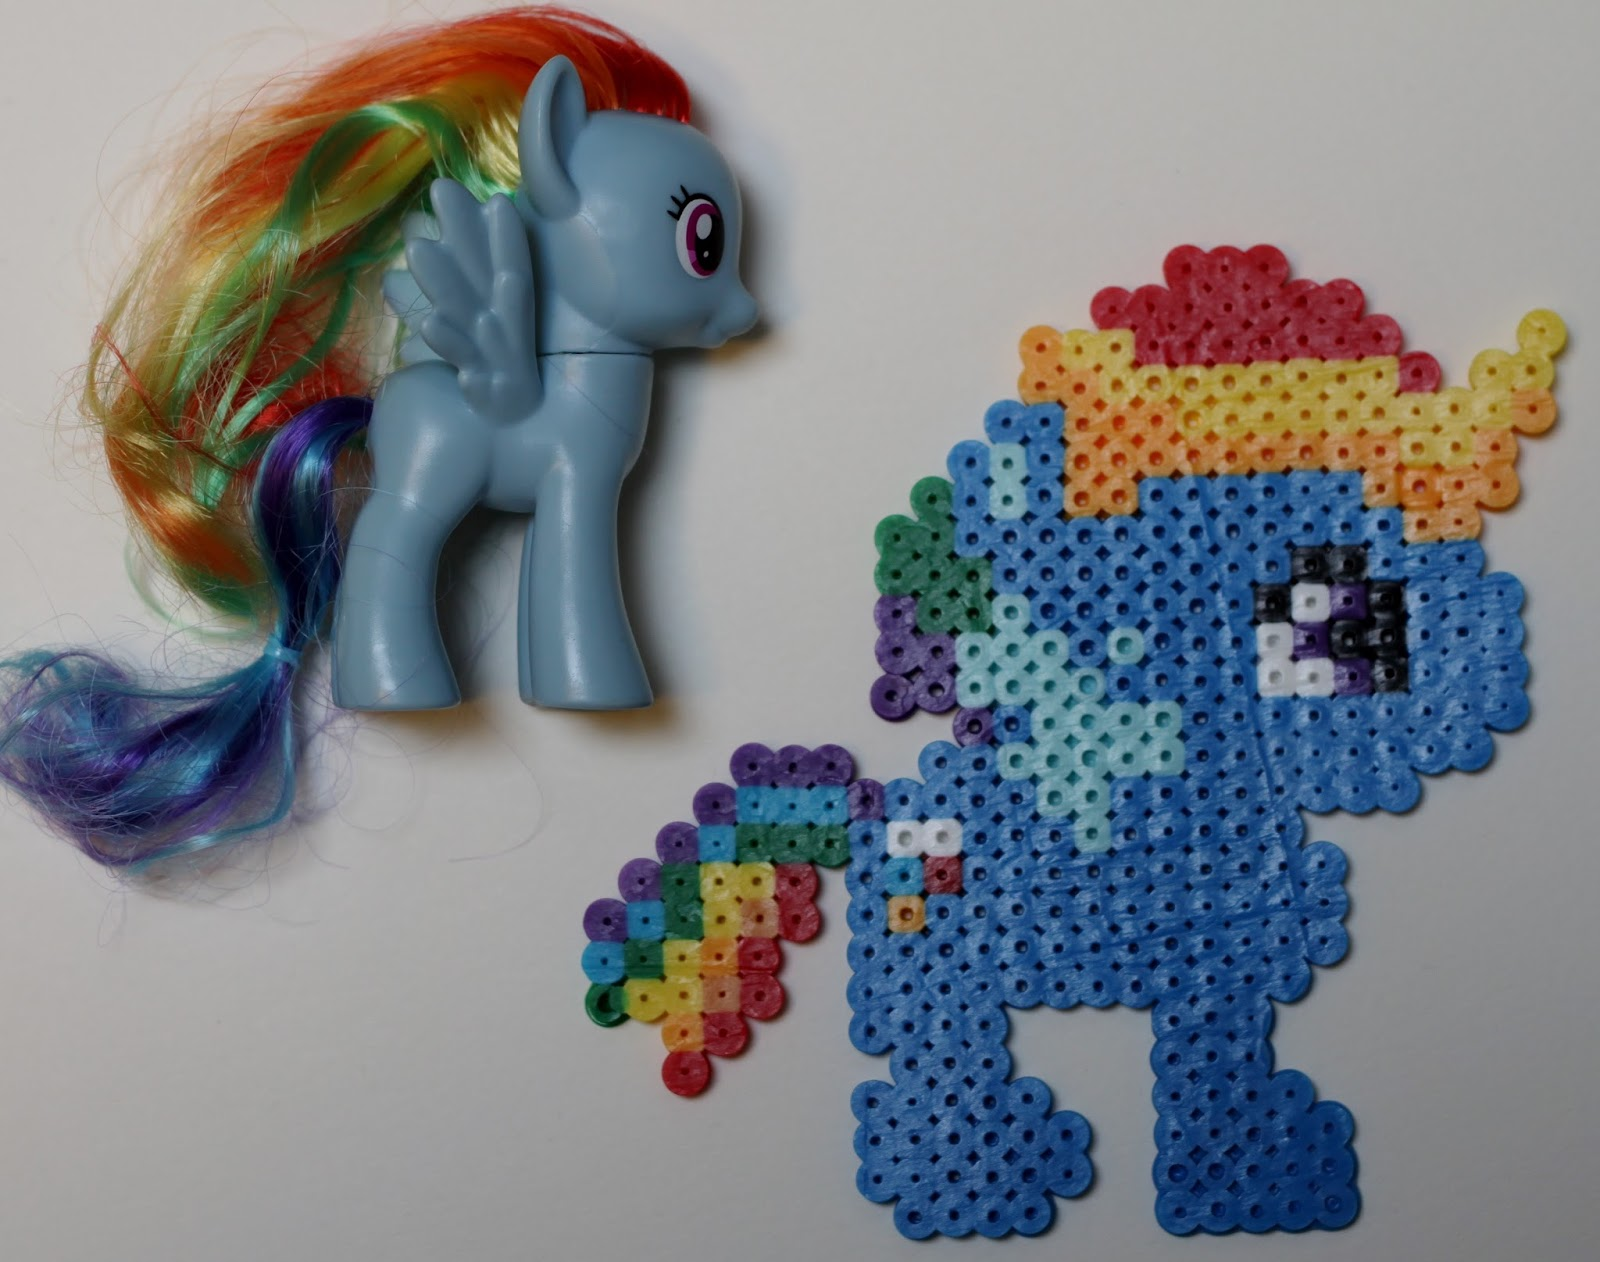 My Little Pony Rainbow Dash Perler Bead Perler Party